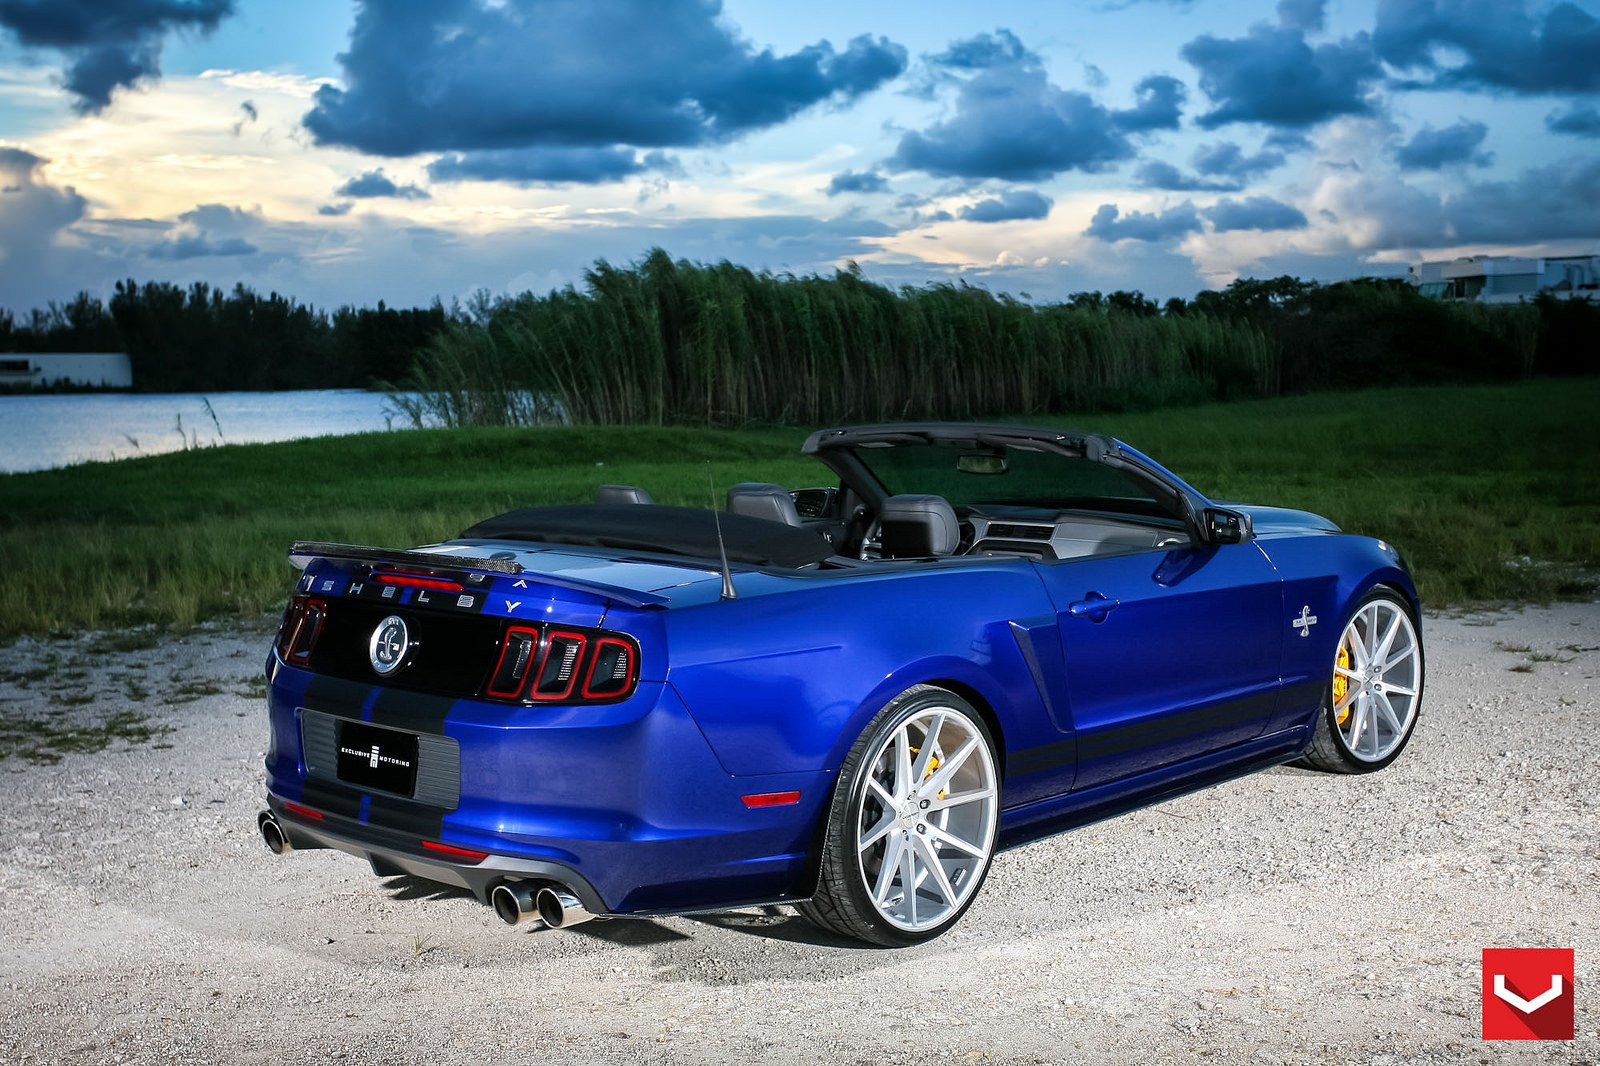 cars vossen tuning wheels ford mustang shelby gt500 convertible blue wallpaper 1600x1066 679185 wallpaperup